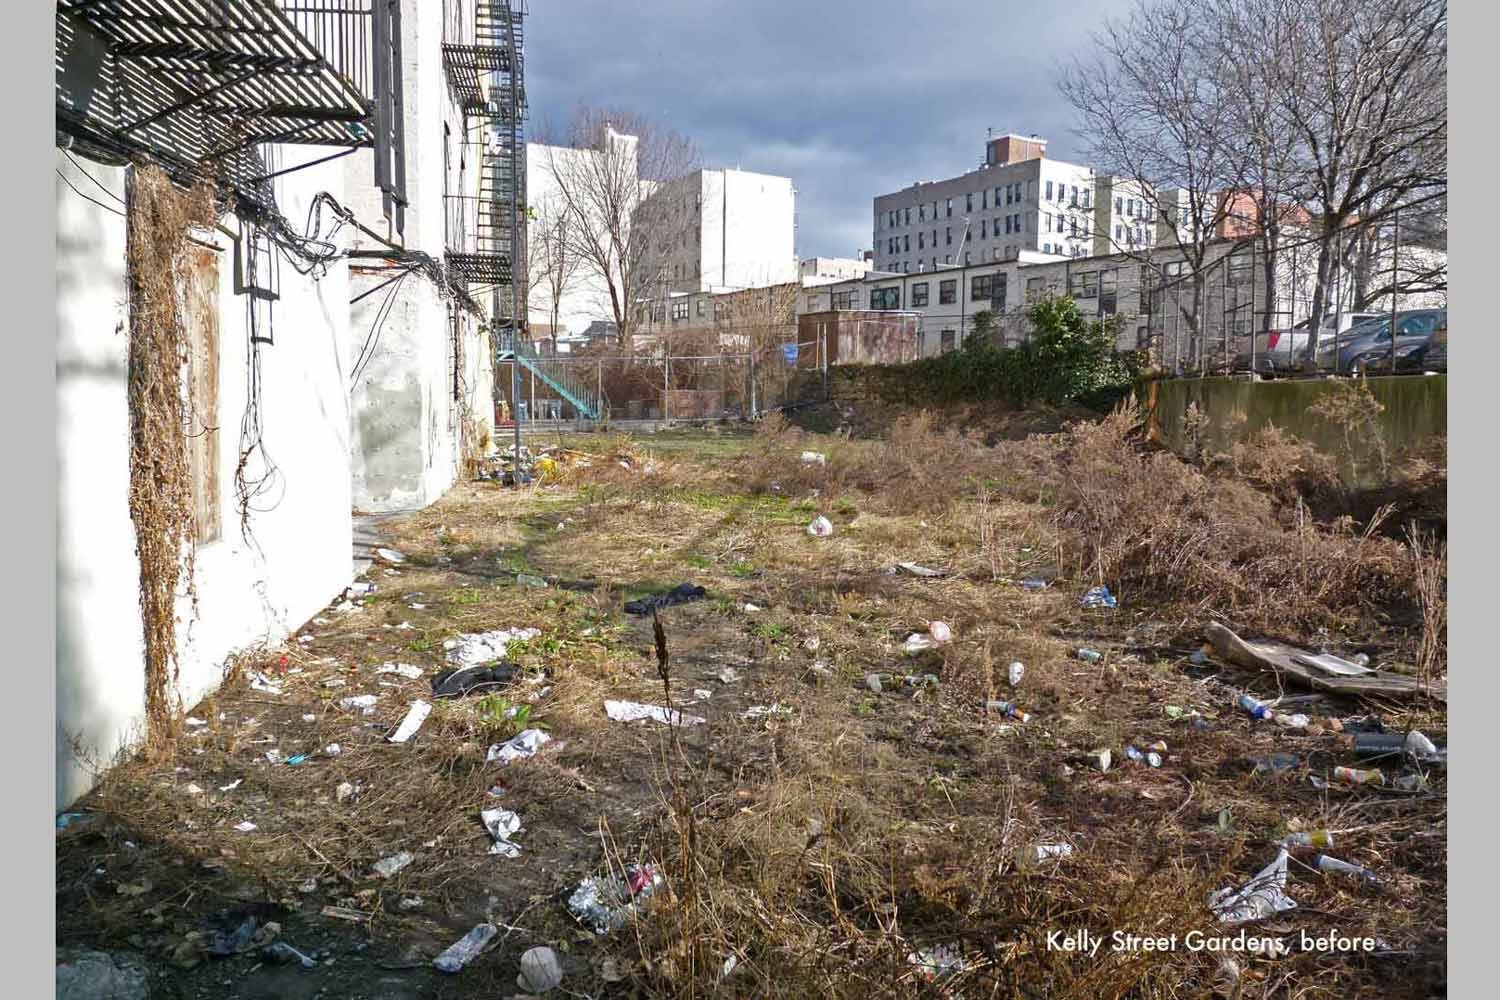 Before rehab and convertion into a garden, this valuable community asset lay fallow and full of trash.